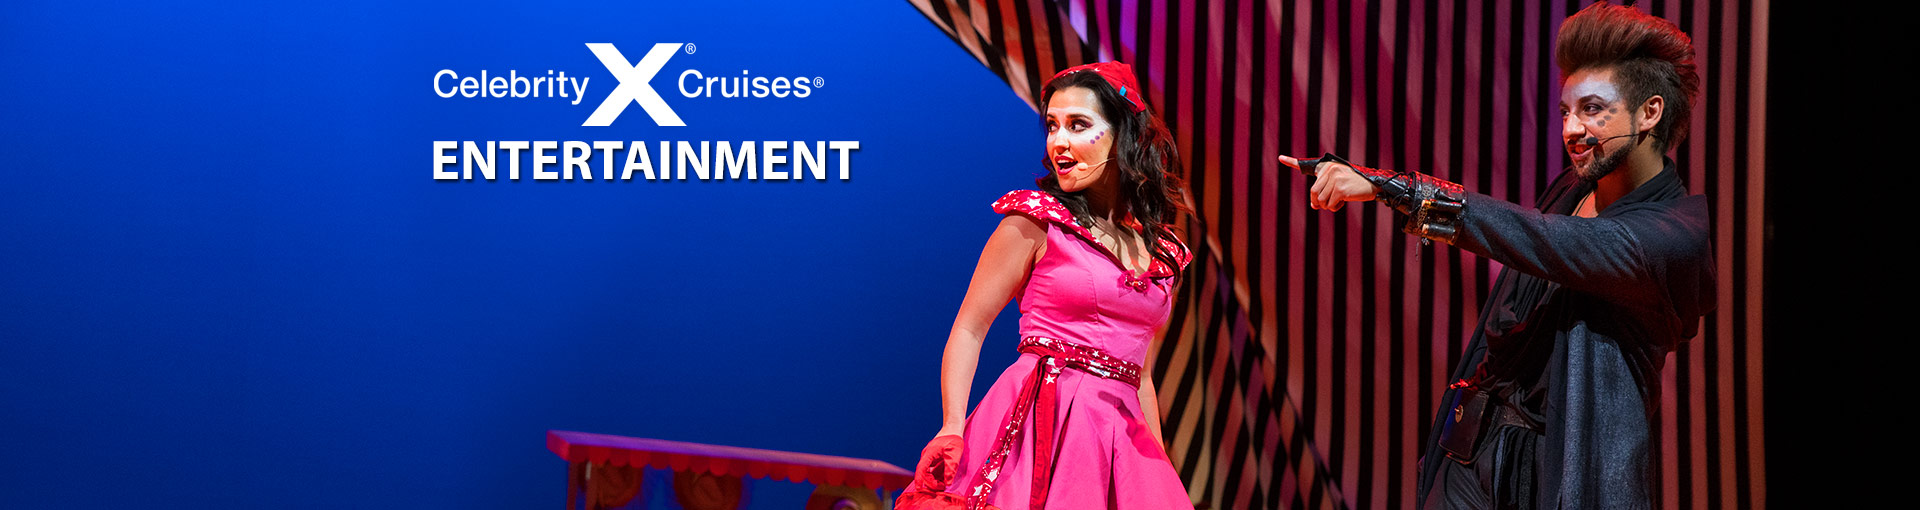 Celebrity Cruises Entertainment